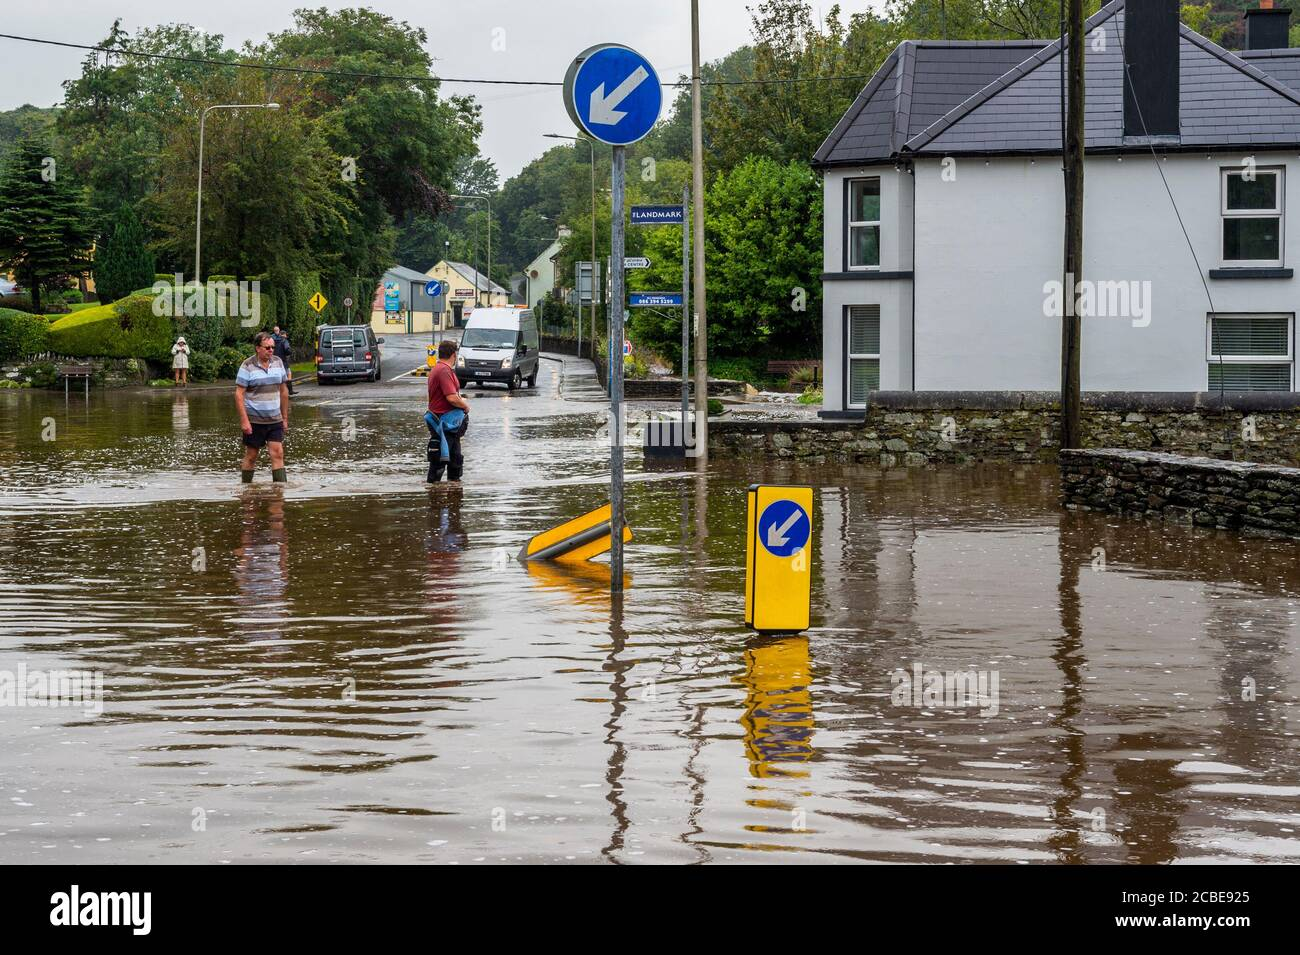 rosscarberry-west-cork-ireland-13th-aug-2020-after-a-night-of-torrential-rain-the-river-roury-broke-its-banks-at-4am-causing-serious-flooding-causing-part-of-the-n71-to-close-the-landmark-restaurant-and-a-number-of-houses-and-bbs-were-badly-flooded-credit-ag-newsalamy-live-news-2CBE925.jpg